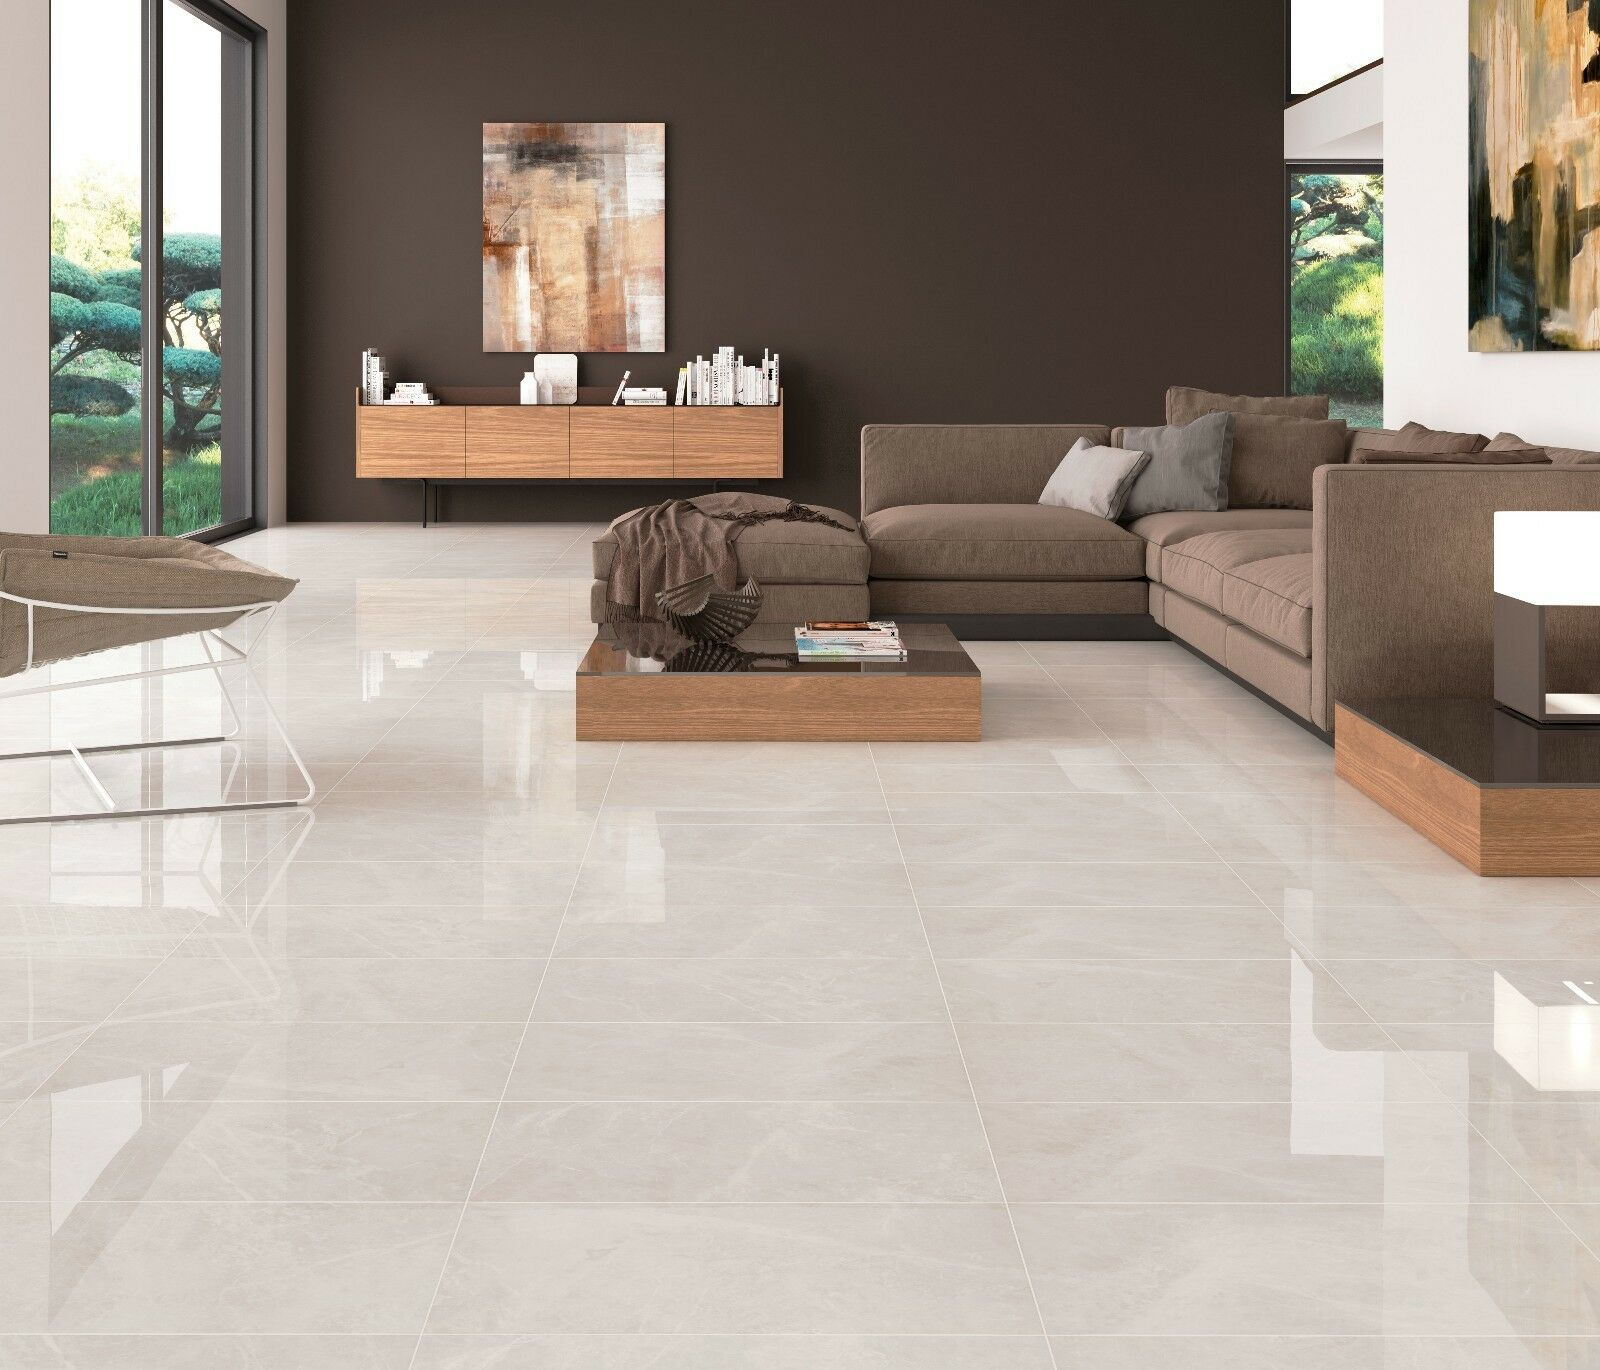 IVORY WHITE MARBLE Stone Effect Gloss Ceramic Wall Floor Tile Cut - 10x10 white ceramic tiles